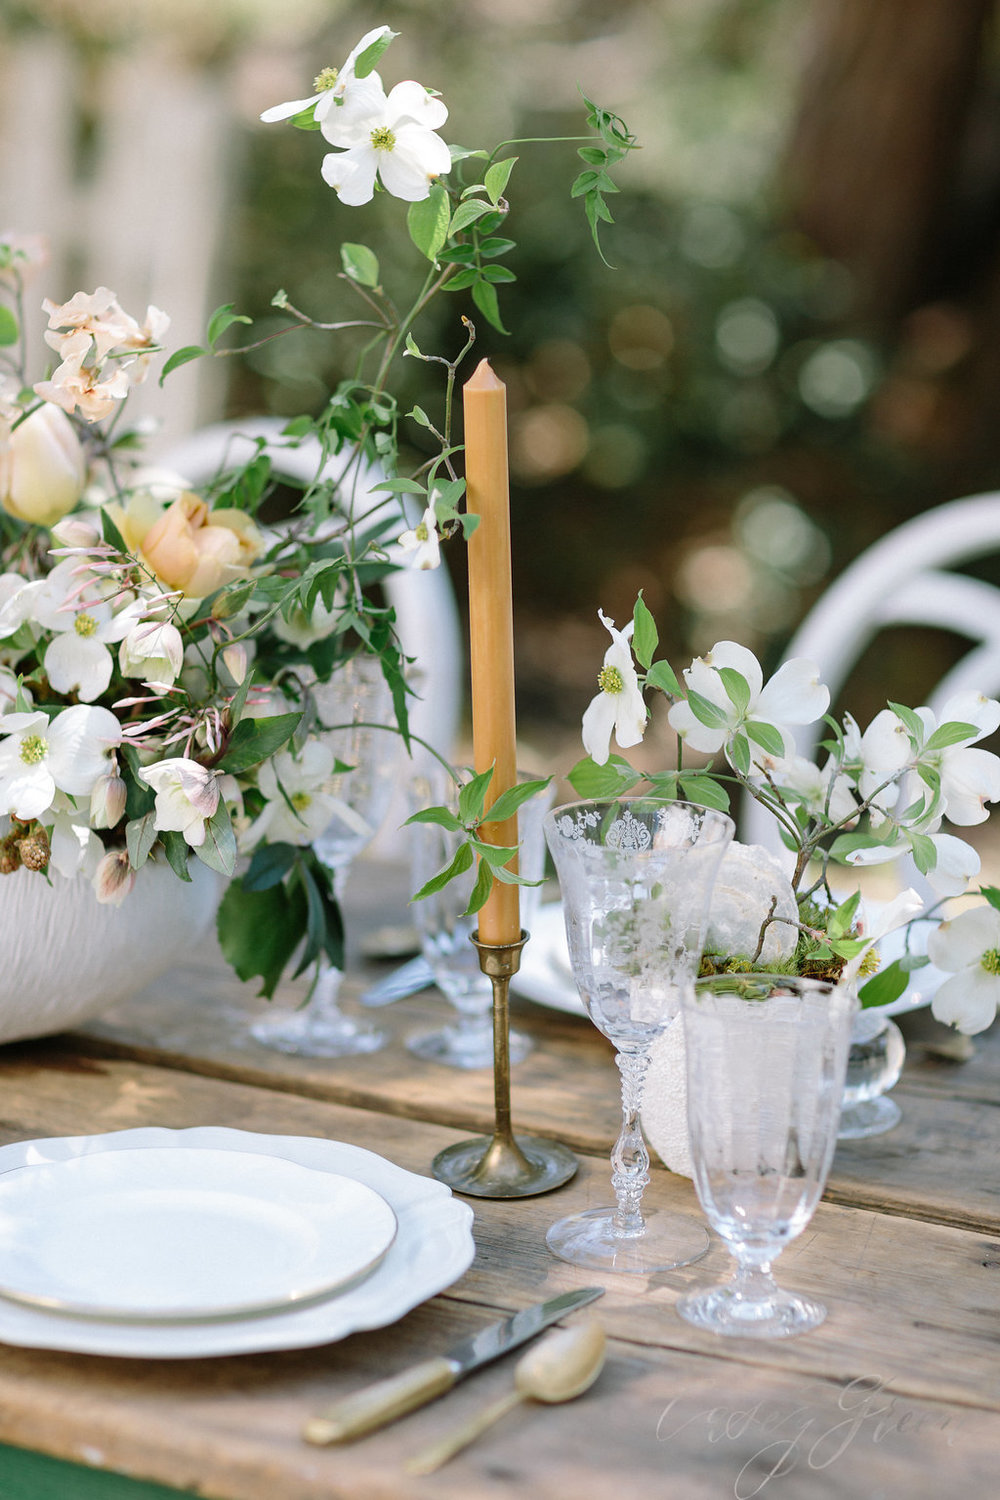 savannah-bridal-shop-ivory-and-beau-bridal-boutique-casey-green-photography-tybee-island-chapel-wedding-planning-mistakes-11.jpg